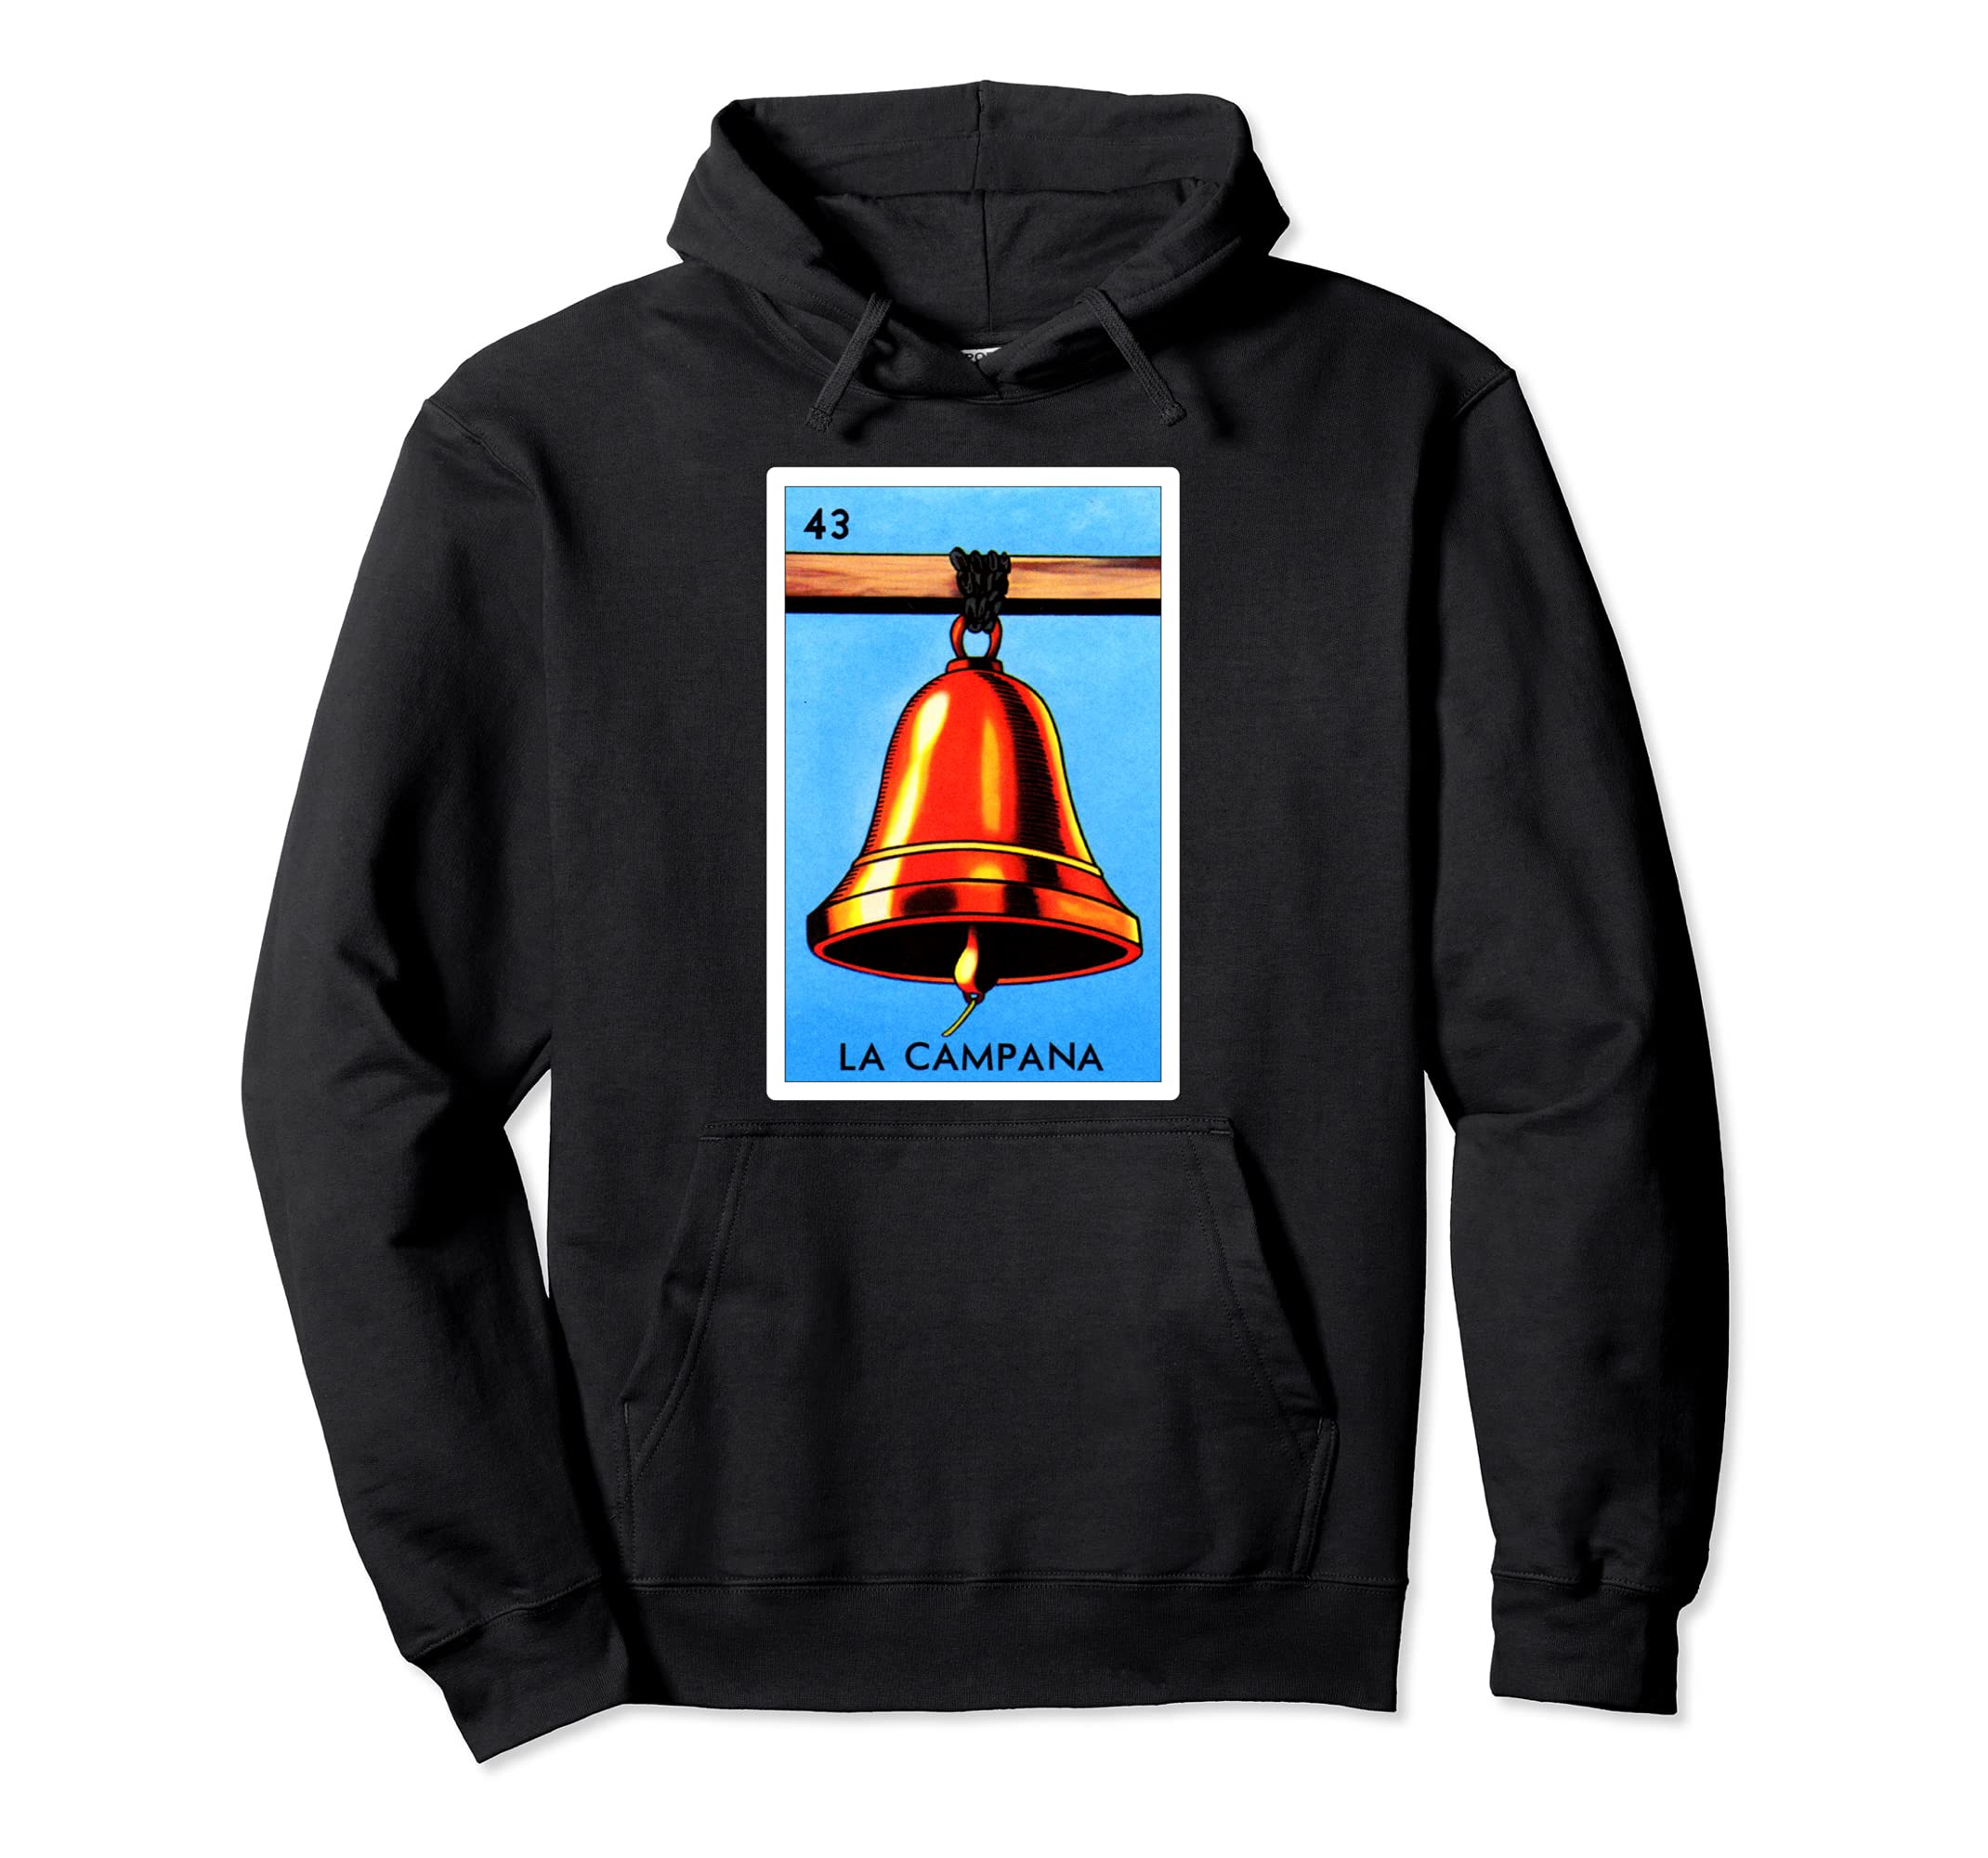 Amazon.com: Loteria Hoodies - La Campana Hoodie: Clothing